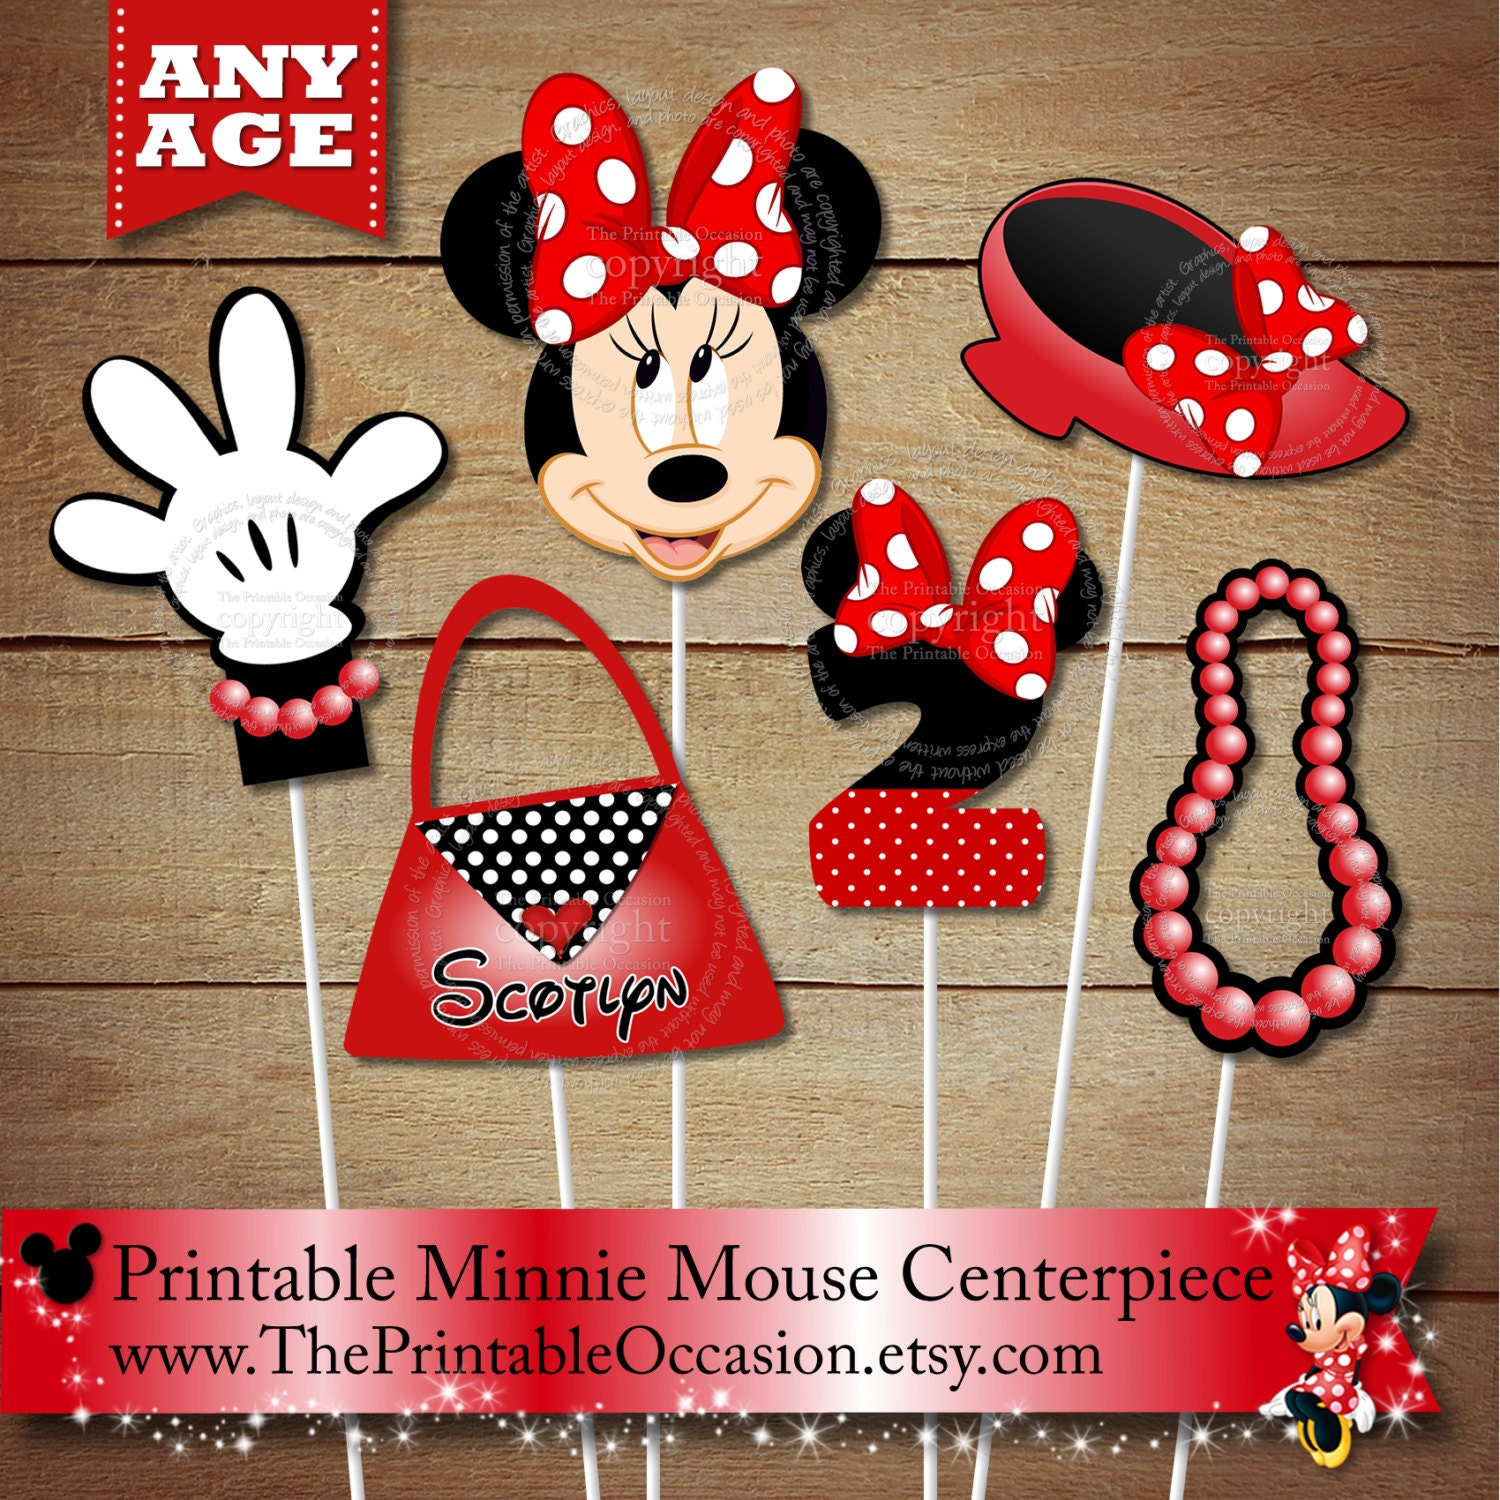 red polka dots personalized minnie mouse printable centerpiece. Black Bedroom Furniture Sets. Home Design Ideas